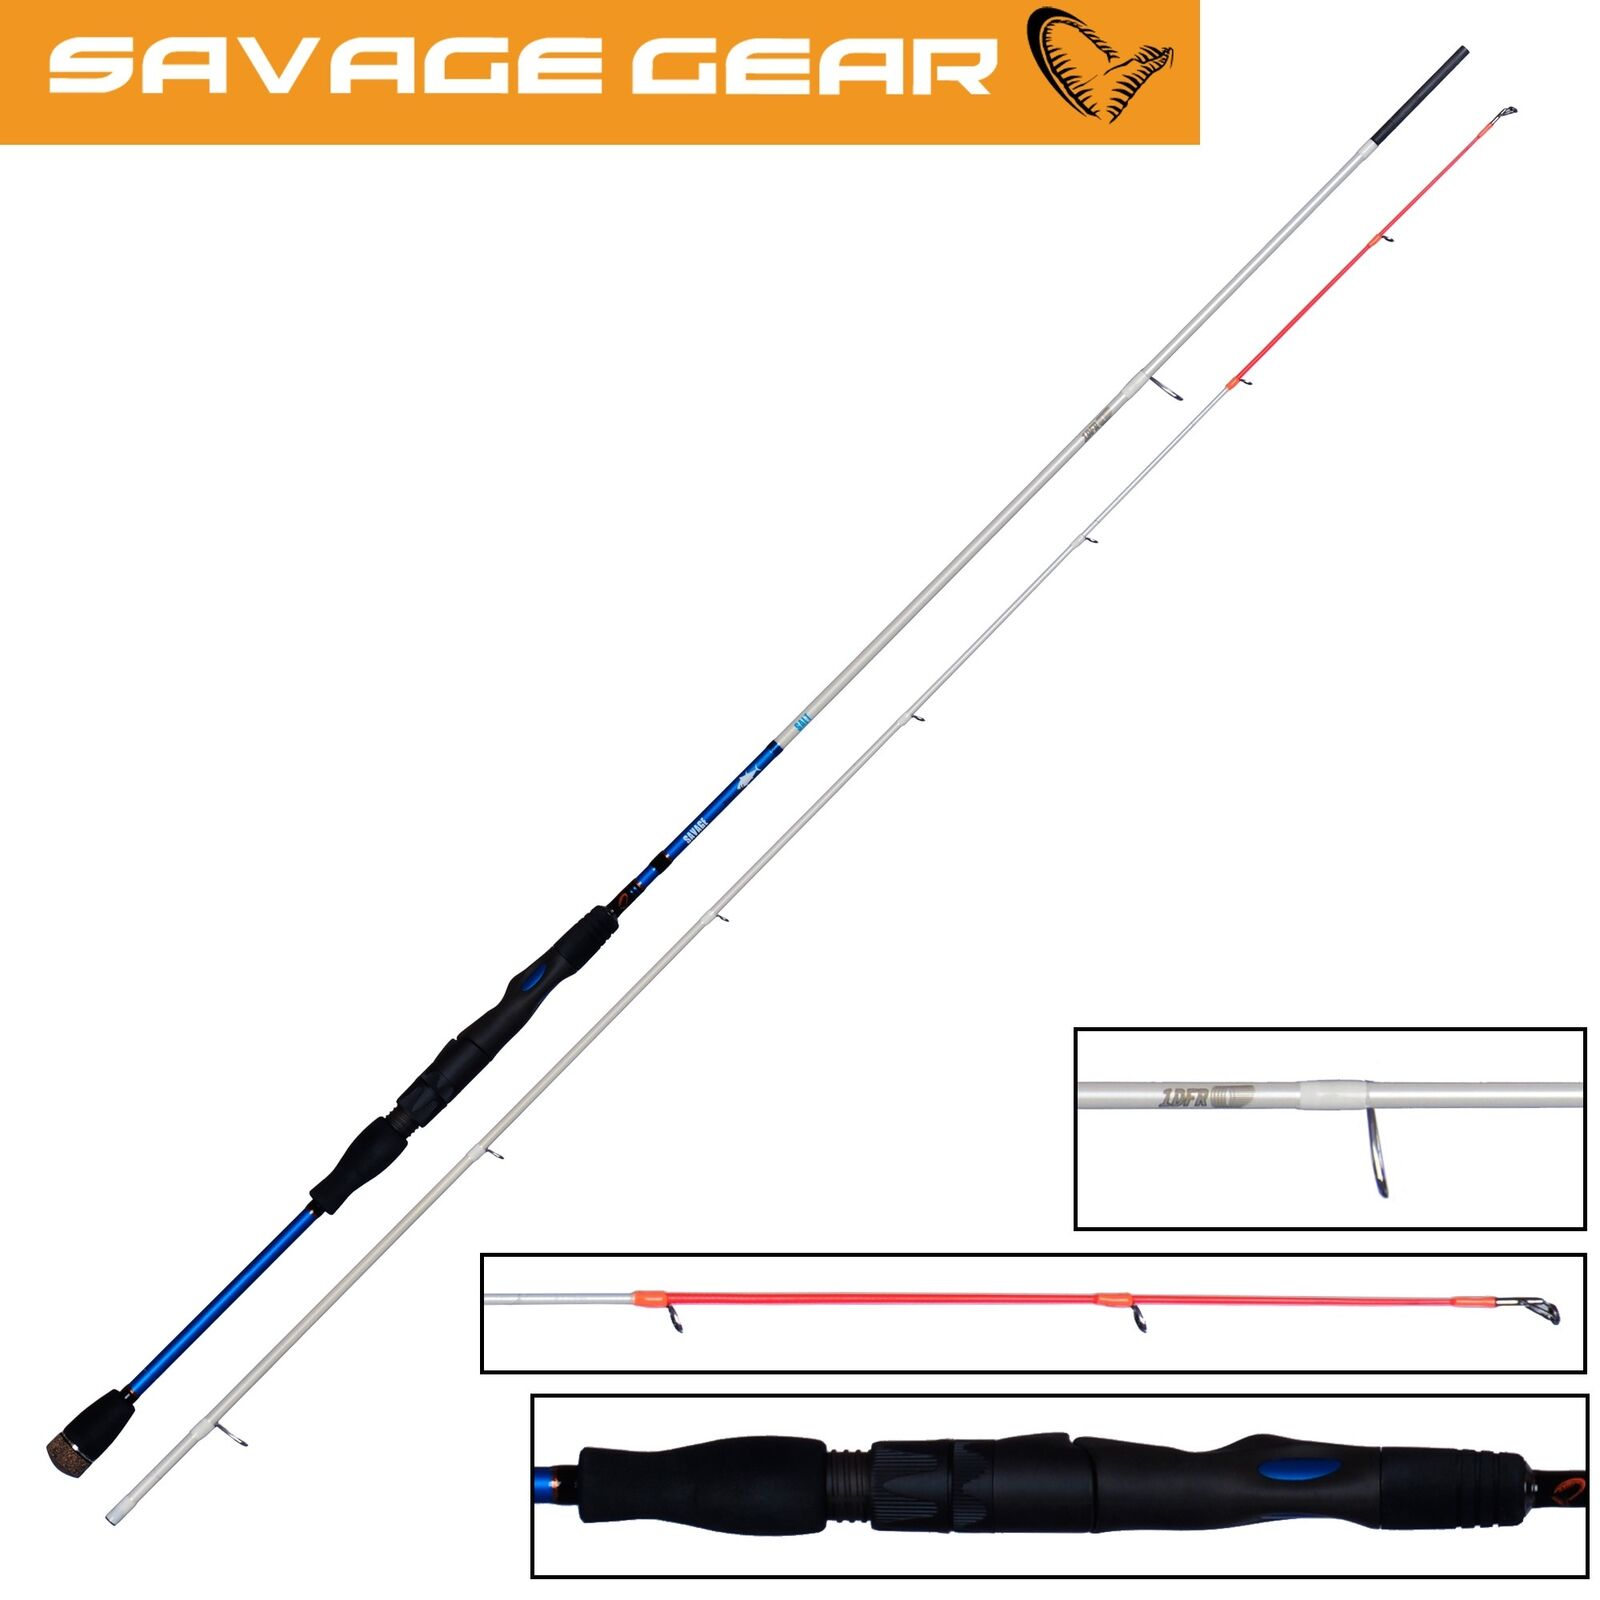 Savage Gear Salt 1DFR 1DFR 1DFR Ultra Light 218cm 8-18g - Spinnrute, Meeresrute, Angelrute 9f39c5